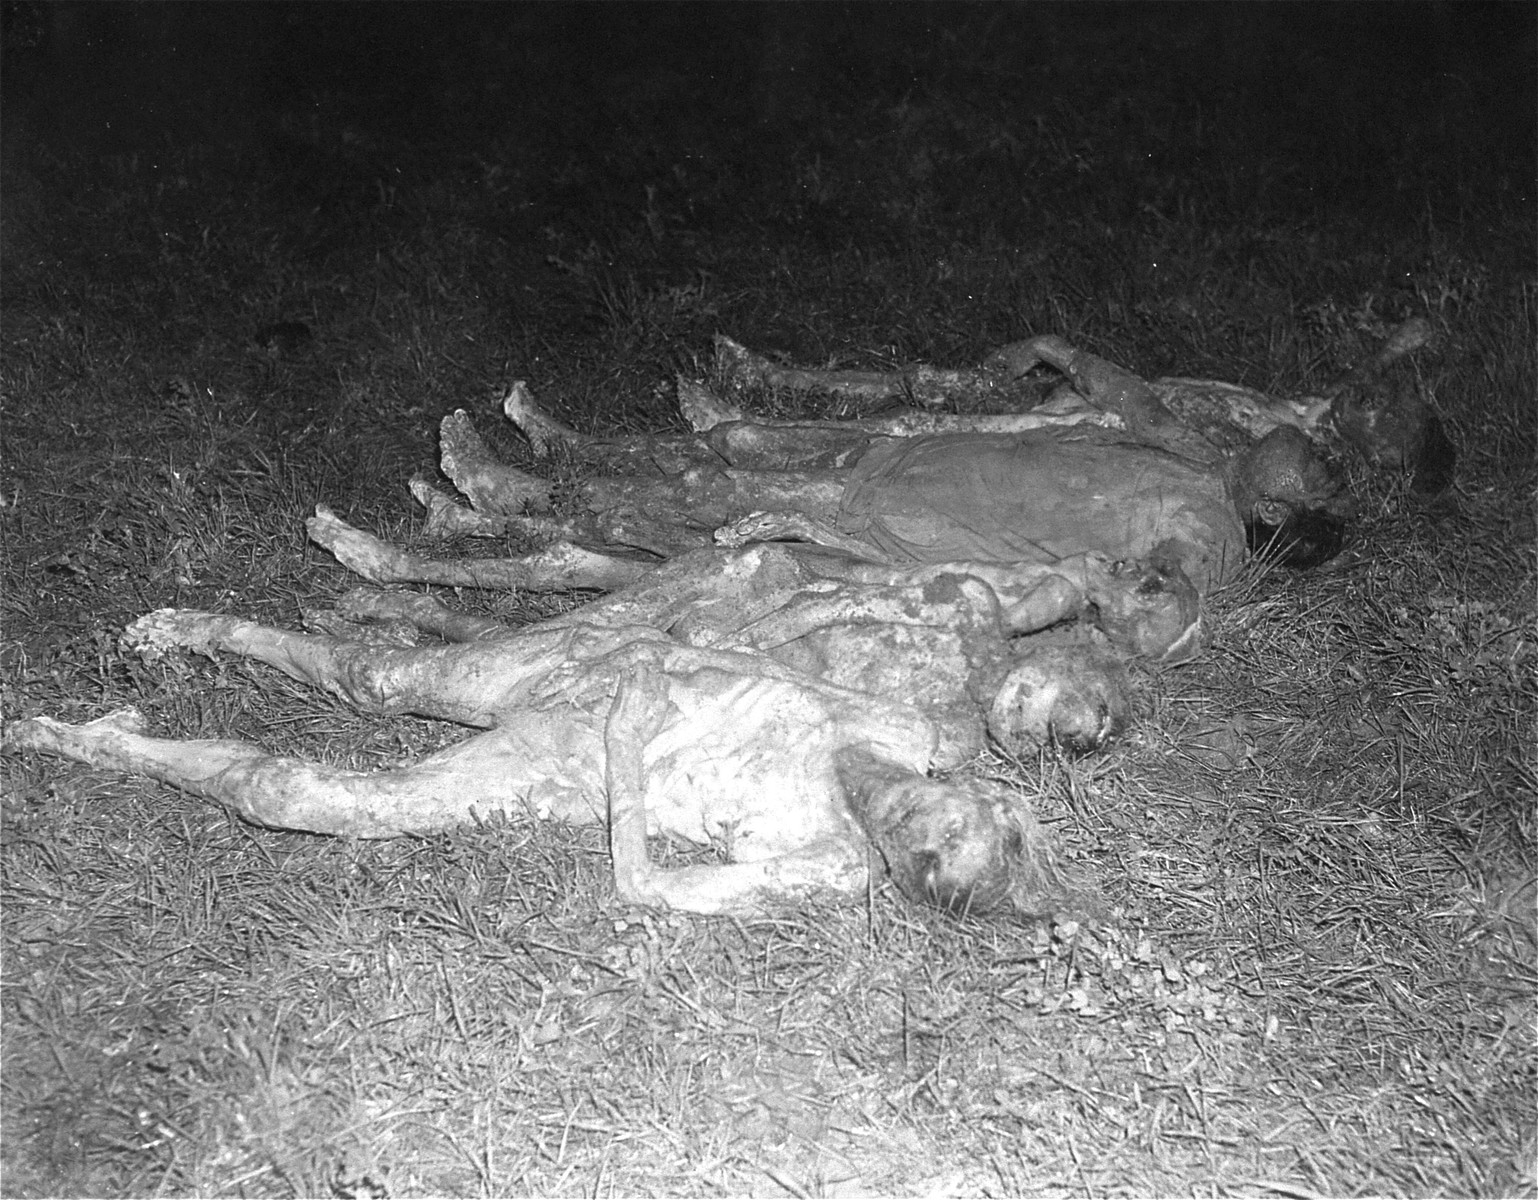 View of the exhumed bodies of Polish and Russian forced laborers who were put to death at the Hadamar Institute and buried in a mass grave behind the euthanasia facility.  The grave was opened at the direction of American war crimes investigators. The photograph was taken by an American military photographer soon after the liberation.